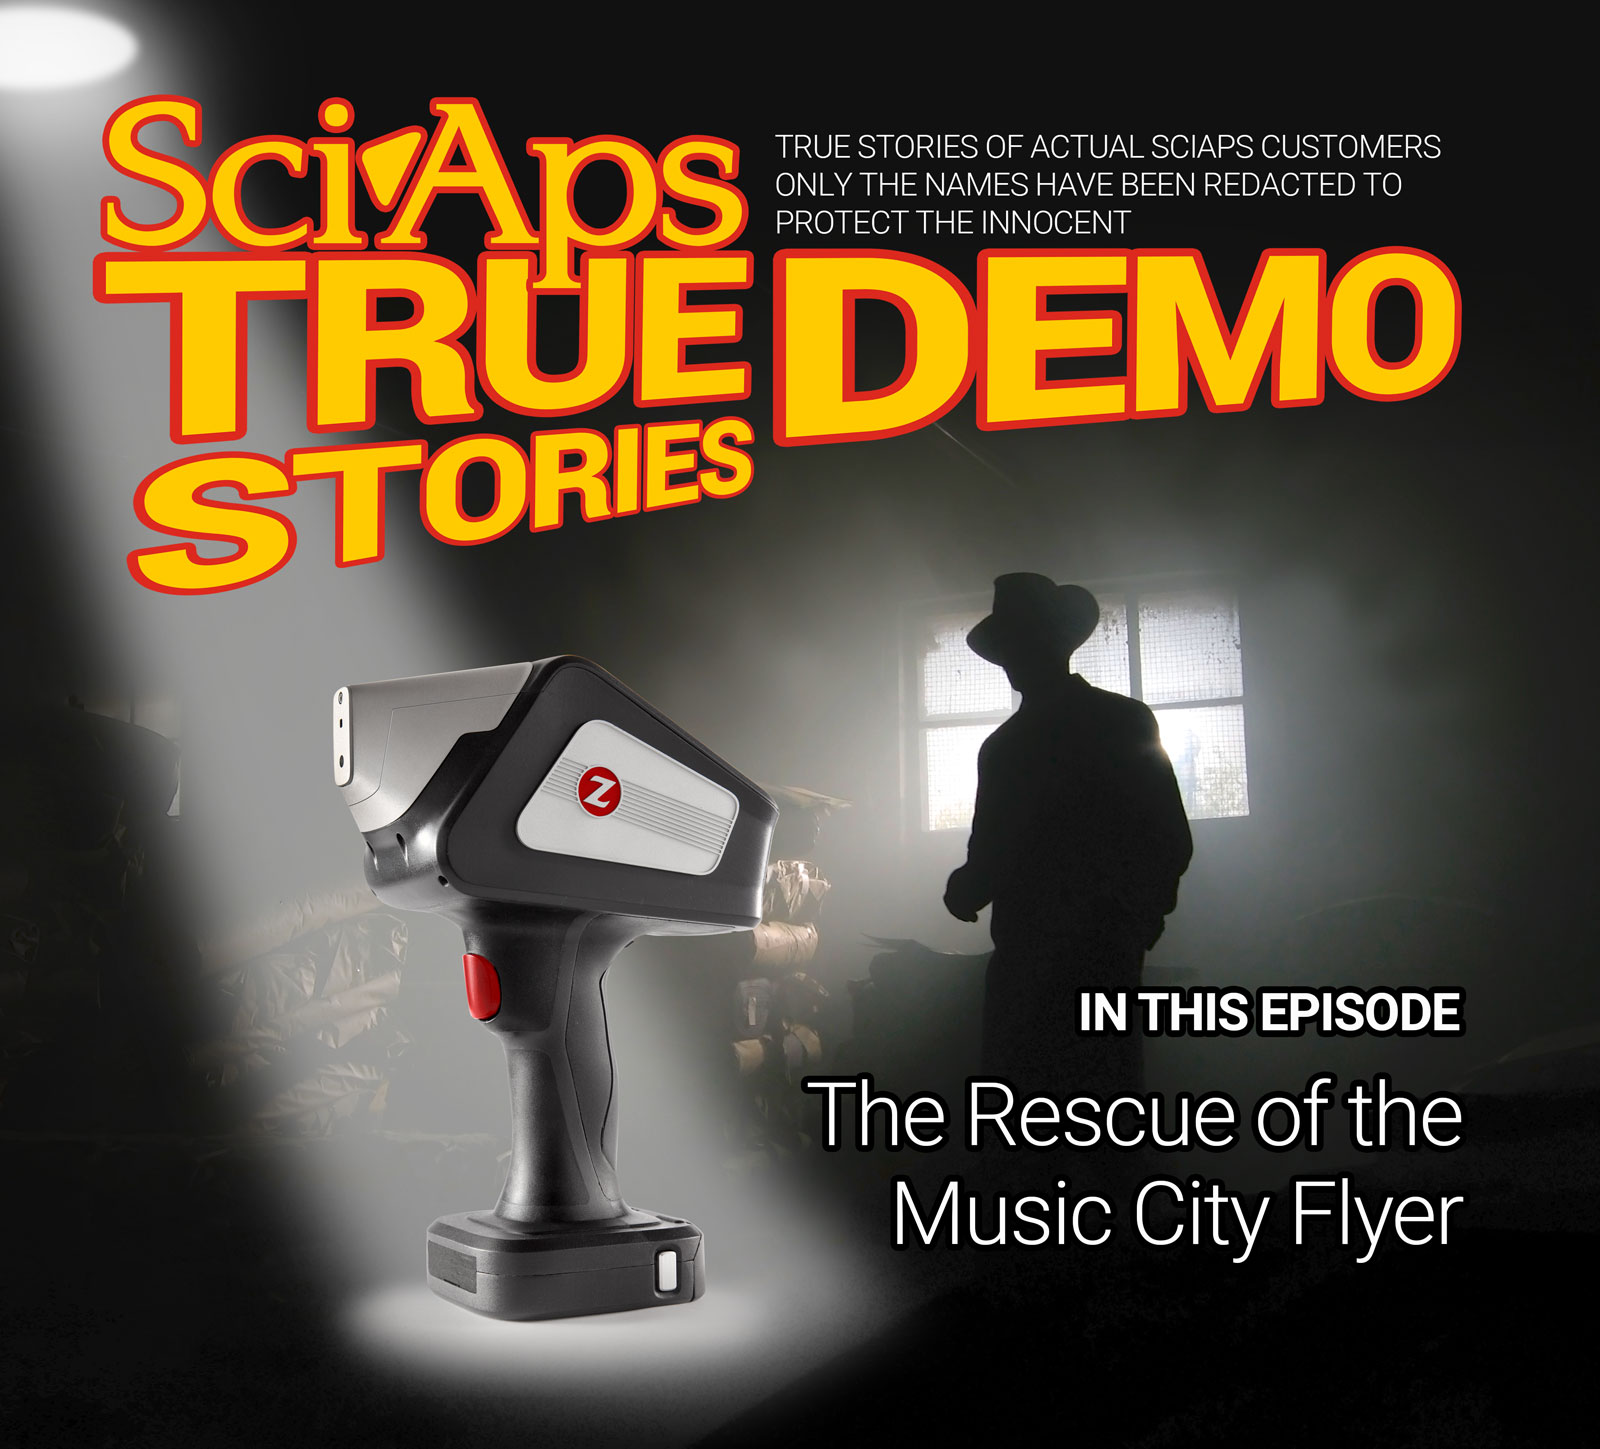 True Demo Stories: The Rescue of the Music City Flyer